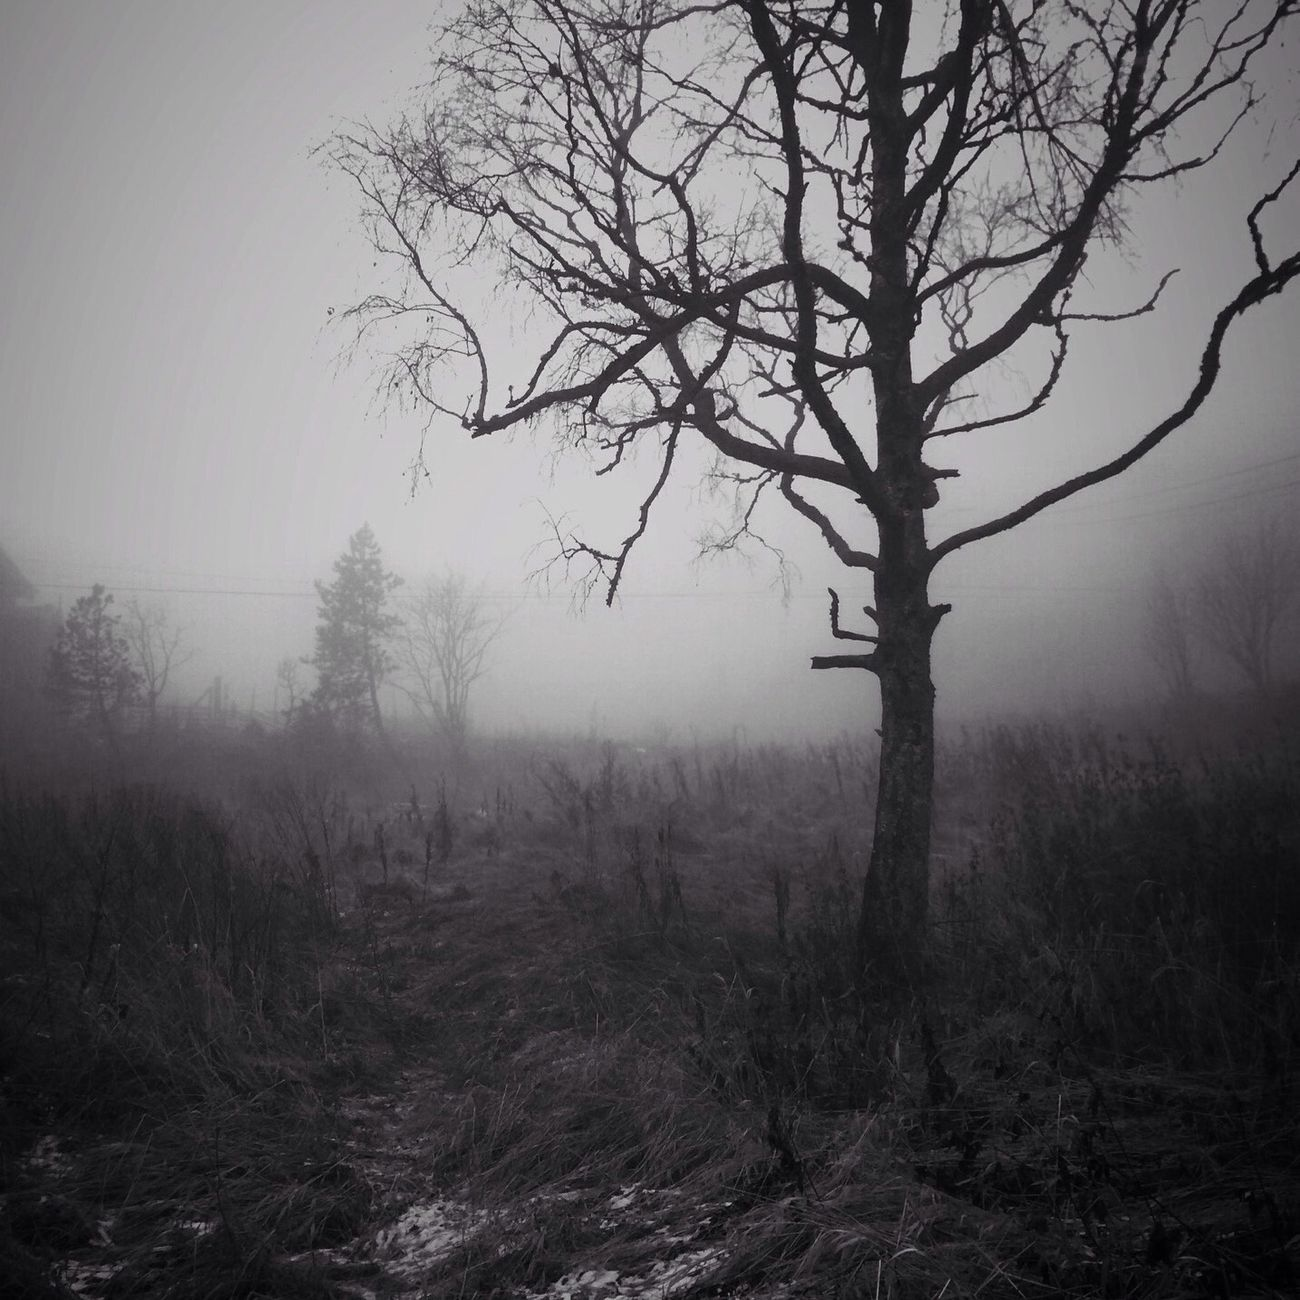 Black And White Nature AMPt_community Chasing Fog